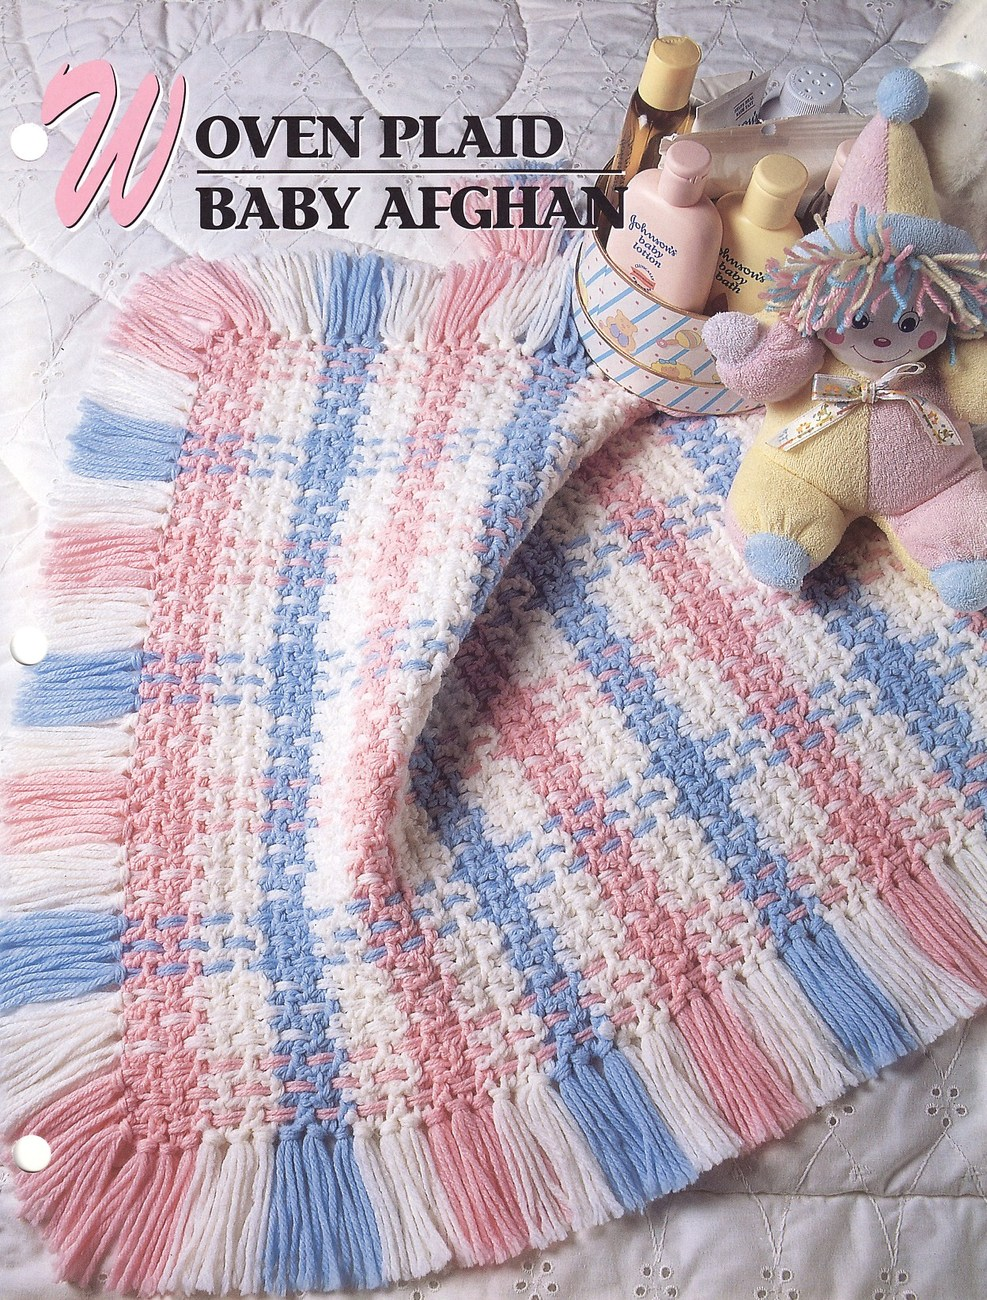 Woven Plaid Baby Afghan Crochet Pattern Blanket Annies ...